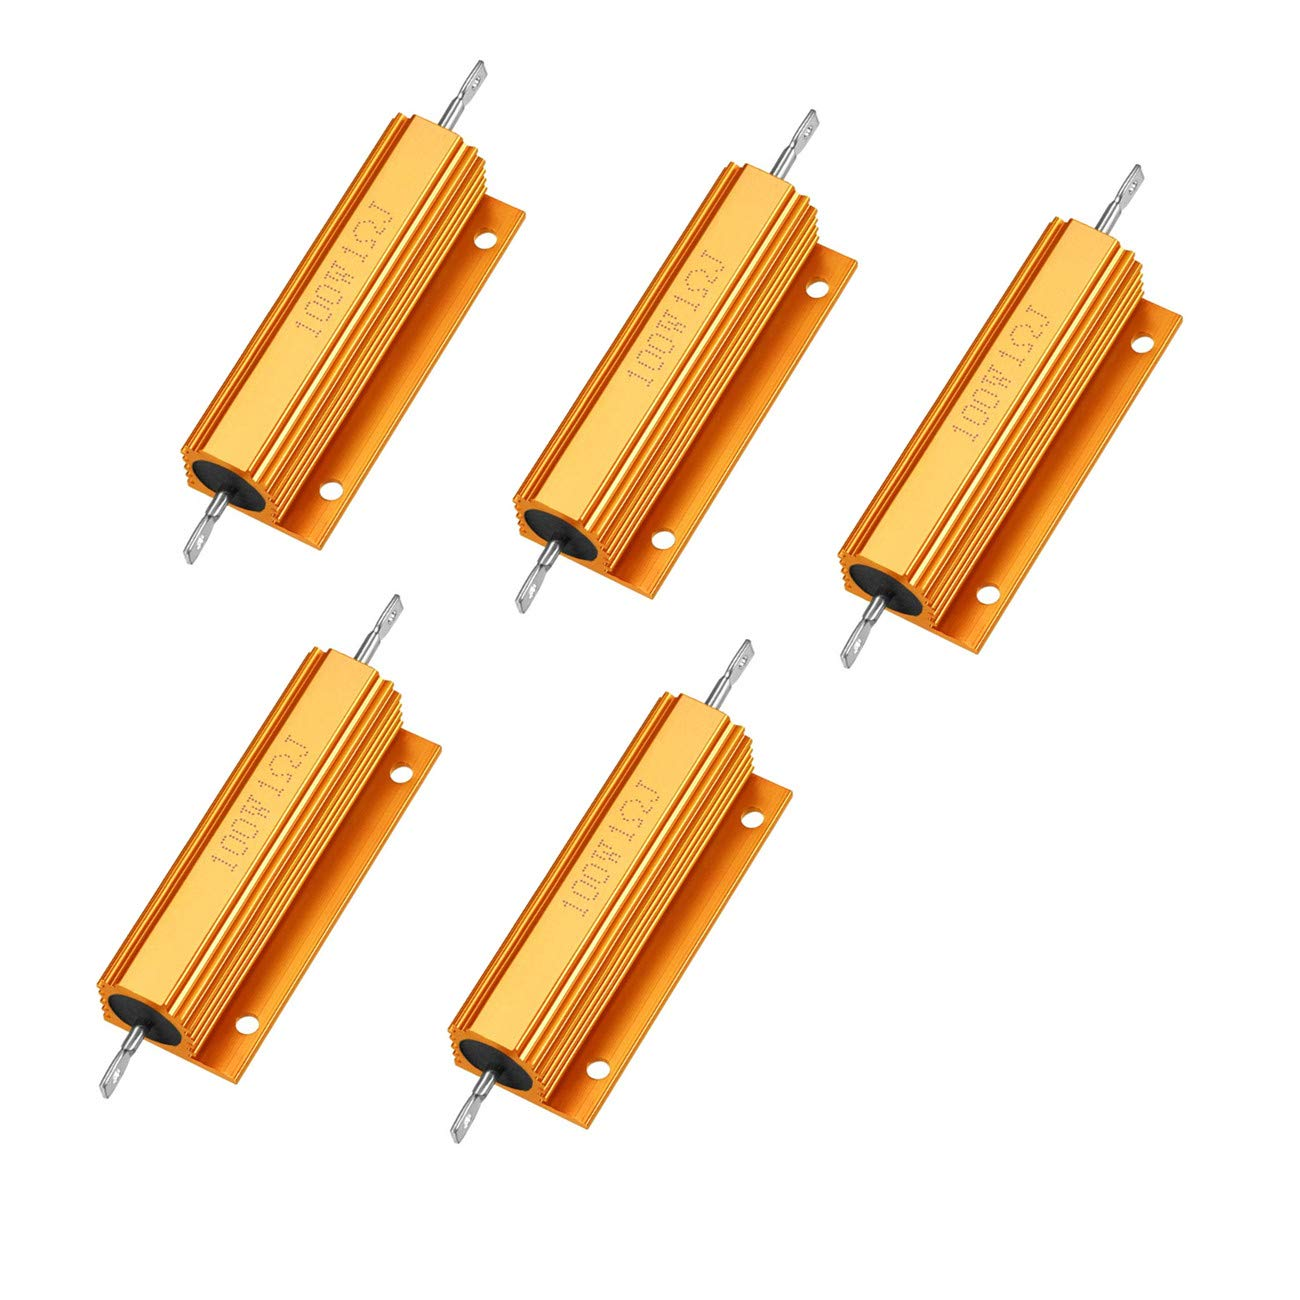 HLin Gold Tone 100W 1 Ohm 5% Aluminum Housed Wire Wound Resistor 5Pcs